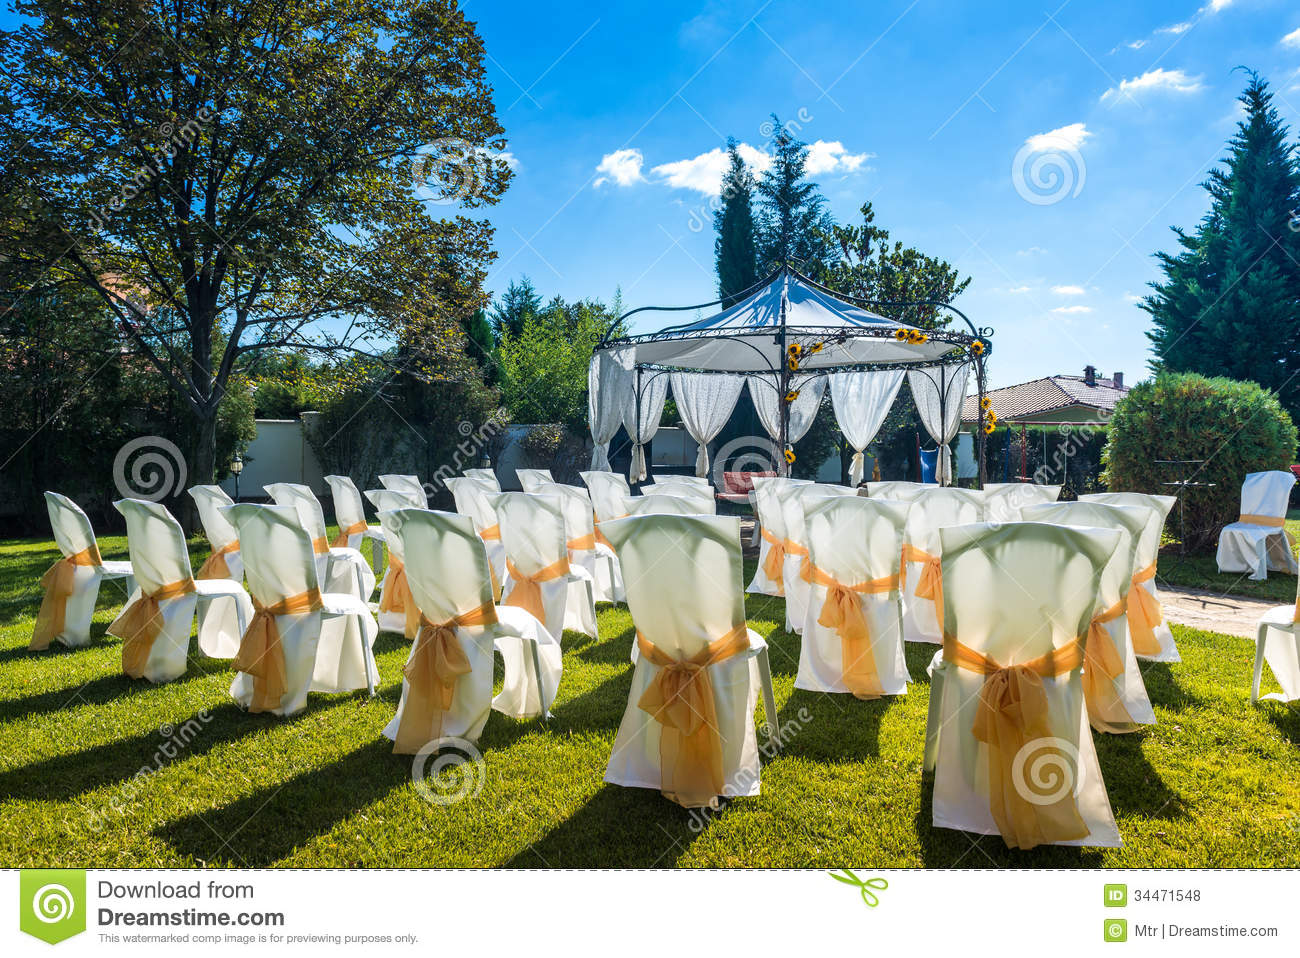 Decorated Chairs On A Outdoor Wedding Stock Photo Image  : decorated chairs outdoor wedding garden party 34471548 from www.dreamstime.com size 1300 x 958 jpeg 308kB